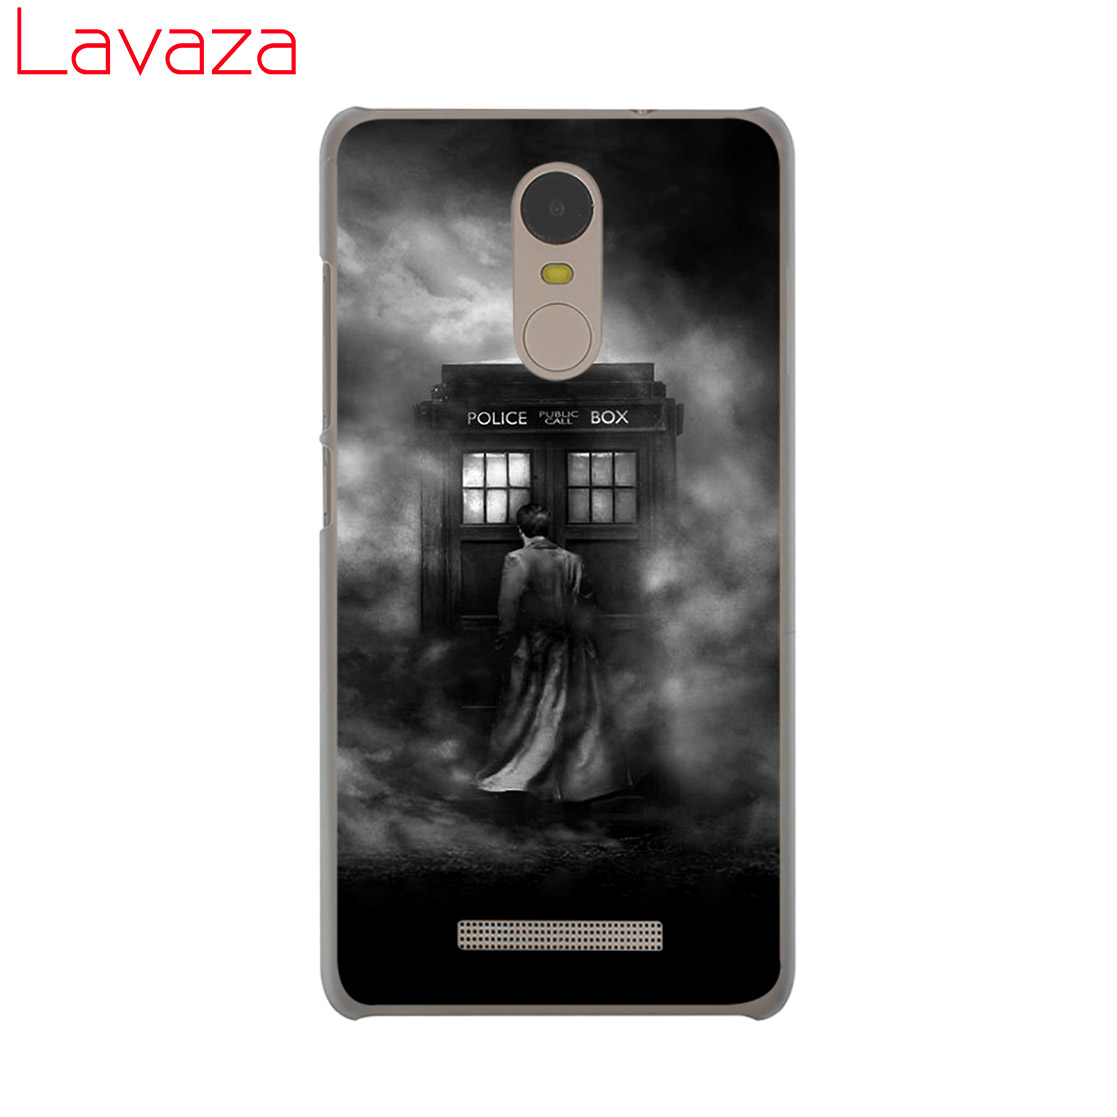 Phone Bags & Cases Case Cover For Xiaomi Redmi 3 3s 4 4a 4x 5 5a Plus 6 6a S2 Pro Prime Tardis Box Doctor Who Hard Pc Cases Cellphones & Telecommunications